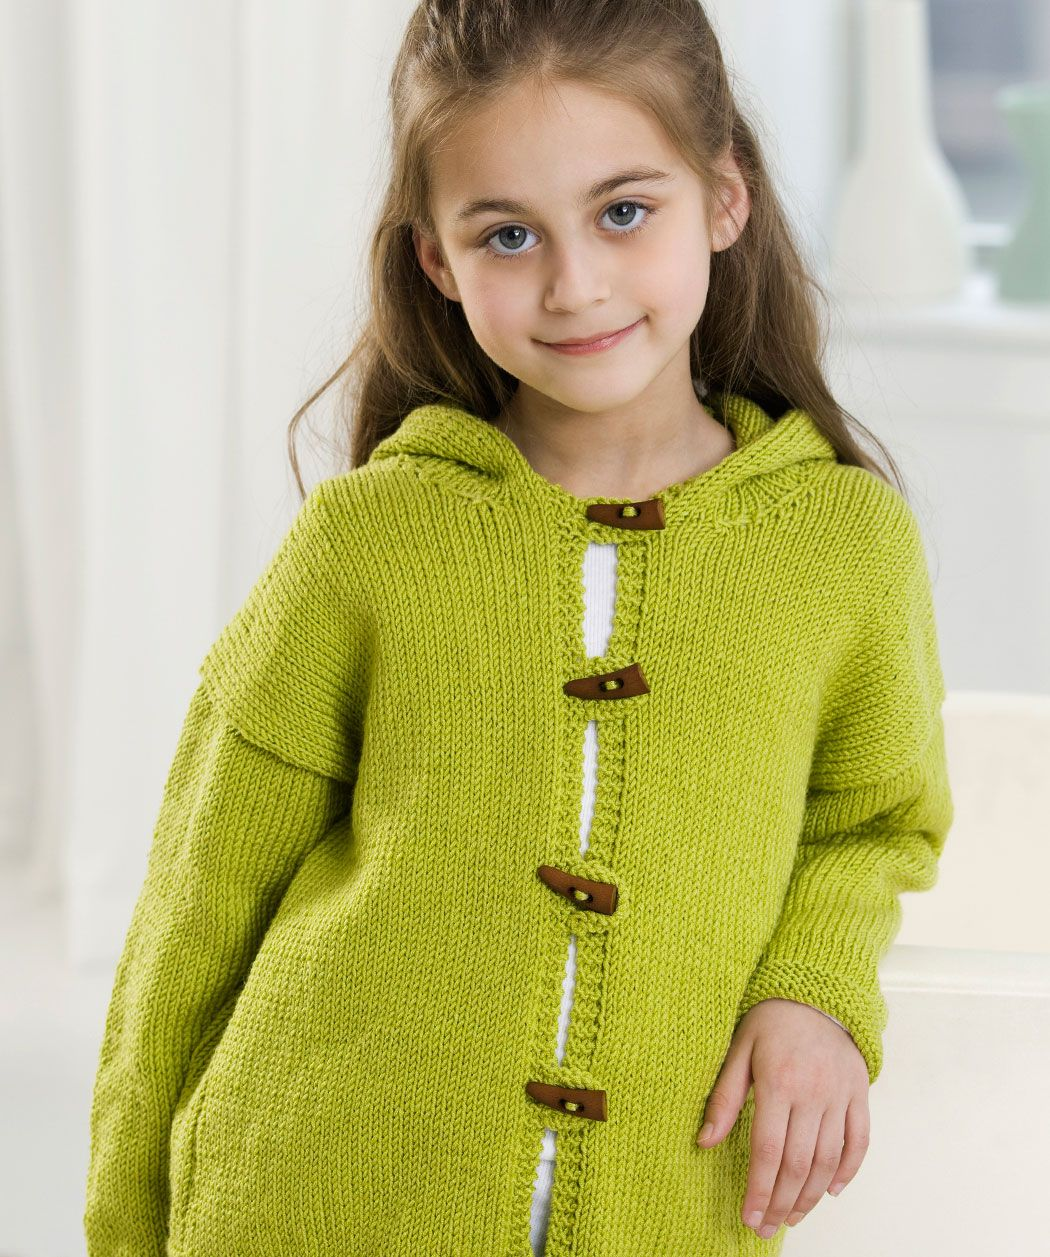 Knitting and crocheting patterns that i wanted to share dars free knitting pattern for smoothie hooded jacket easy knitting pattern for hoodie sweater for sizes 18 months to 6 years bankloansurffo Image collections